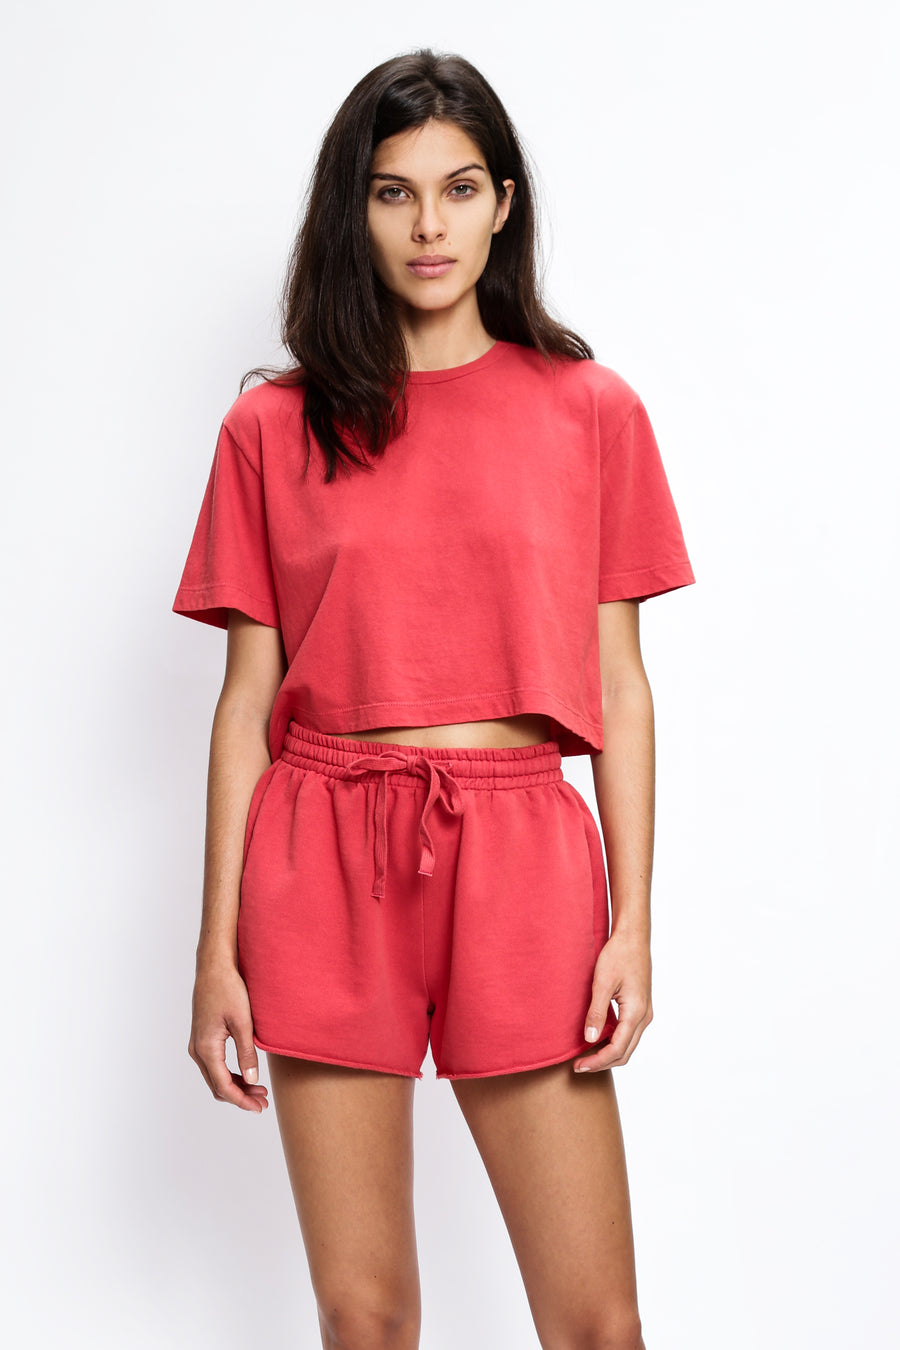 SHORTS MOLETOM CORAL